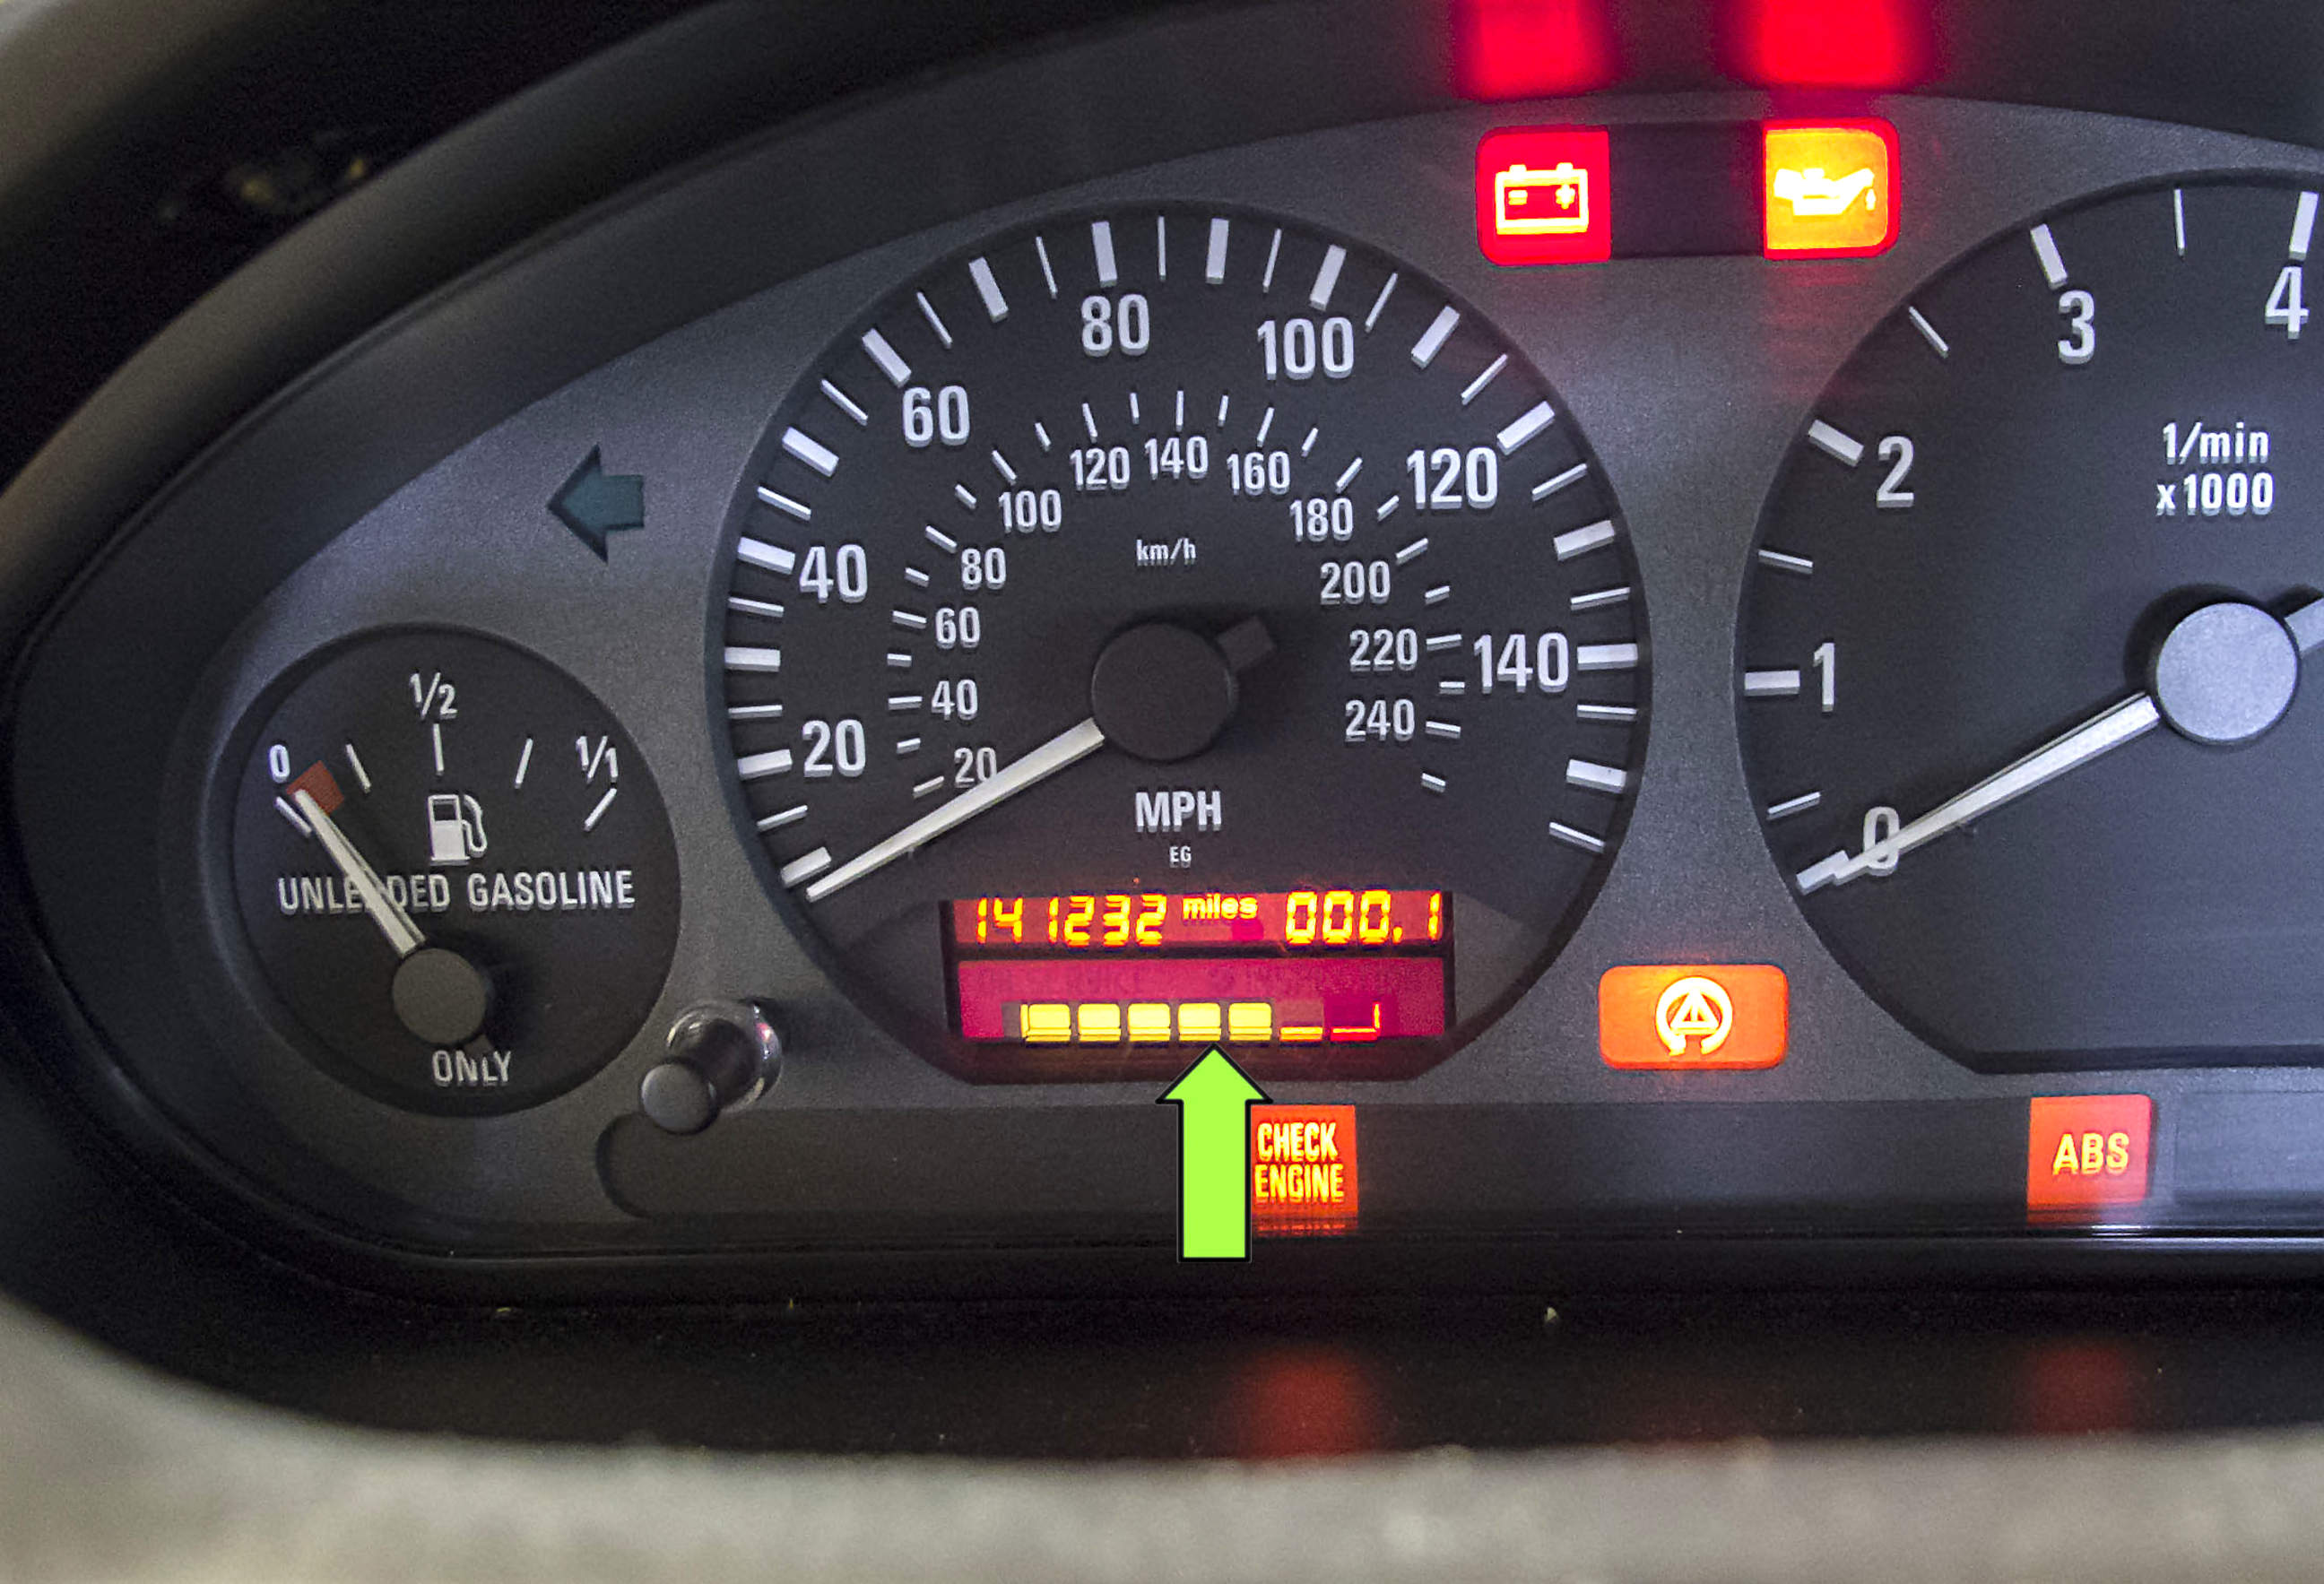 The service indicator is an illuminated bar in the instrument cluster  (green arrow).